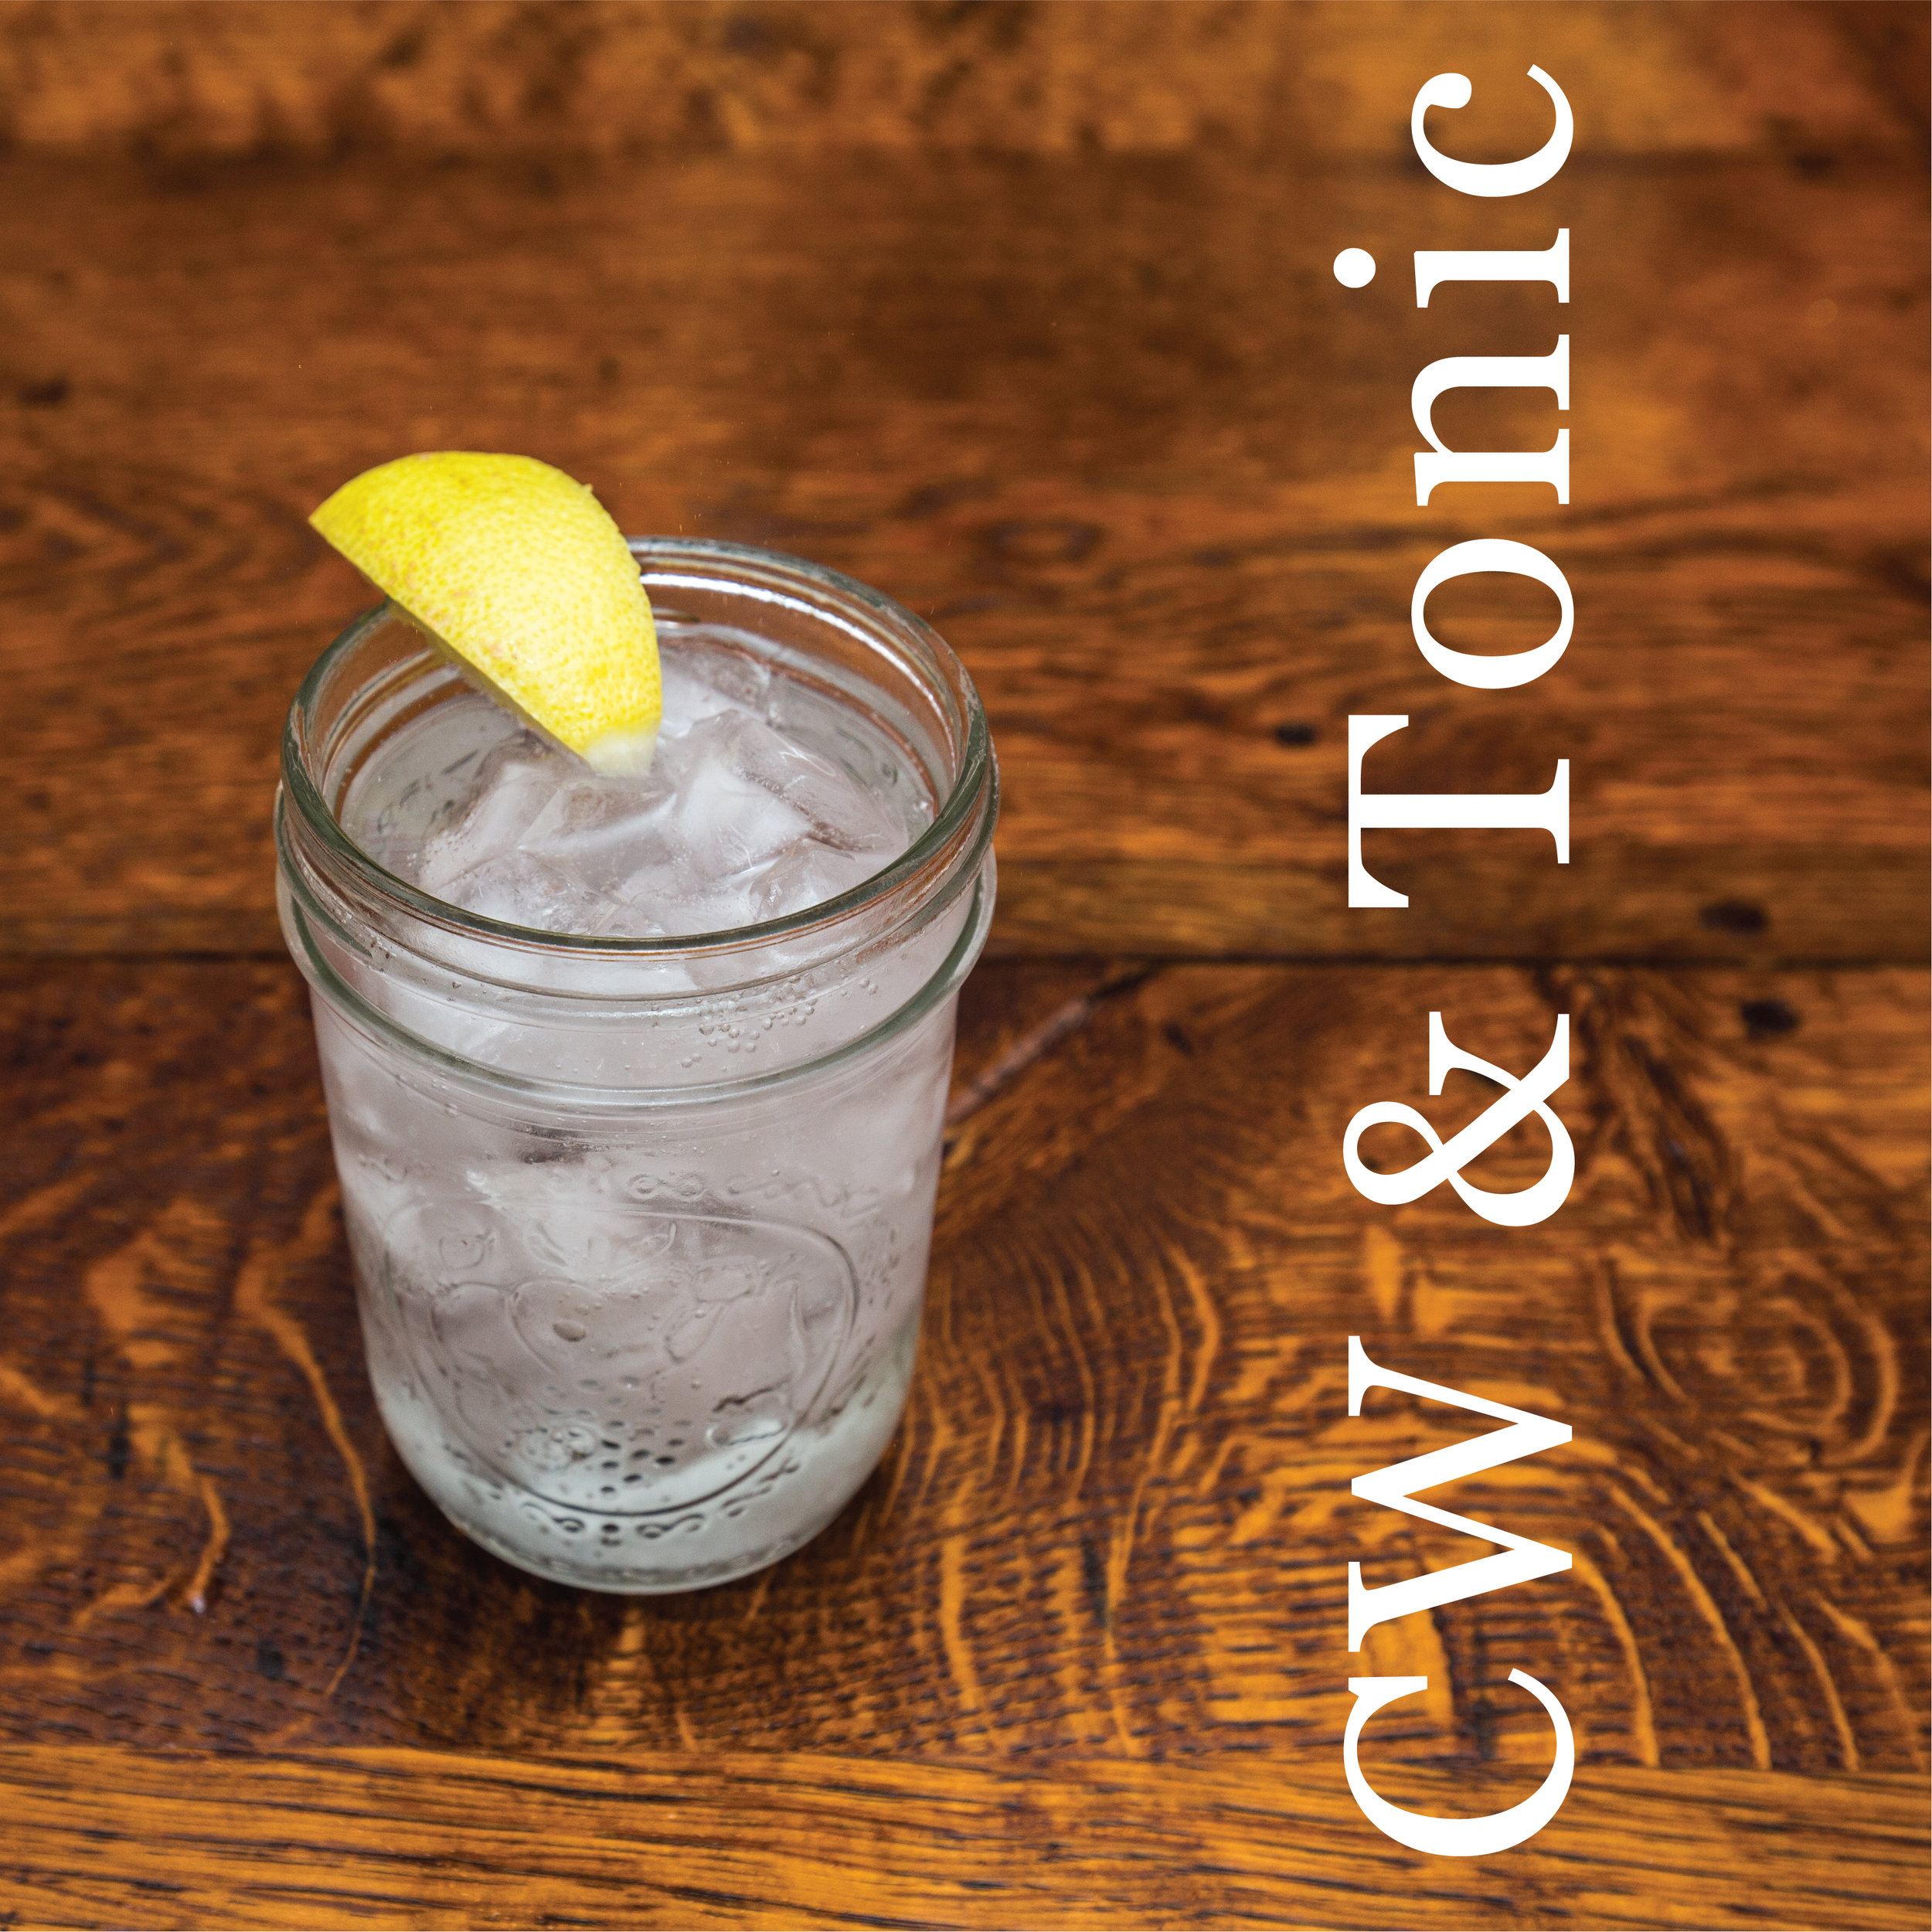 Corn Whiskey and Tonic